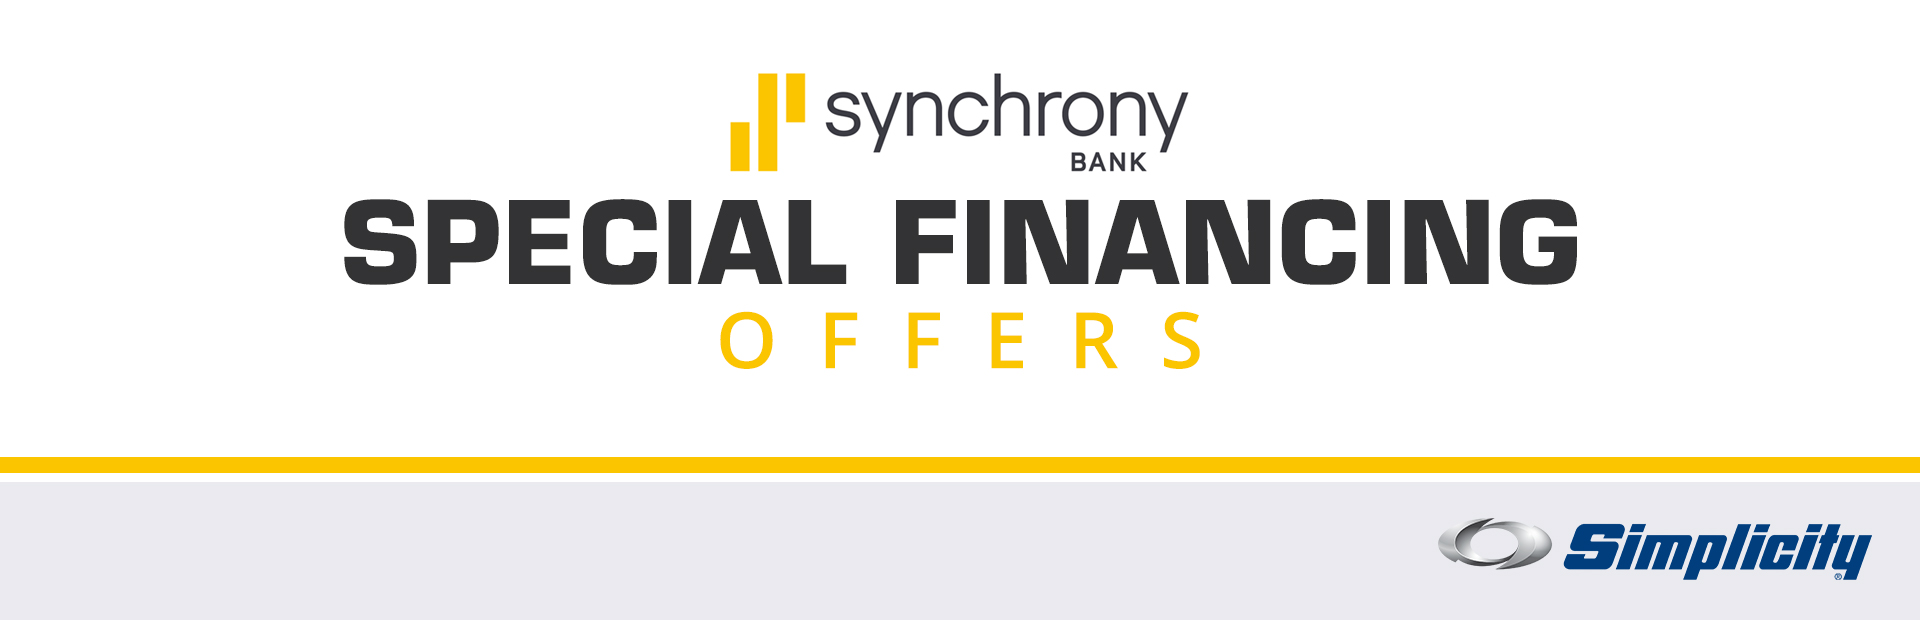 Simplicity: Synchrony Bank Special Financing Offers